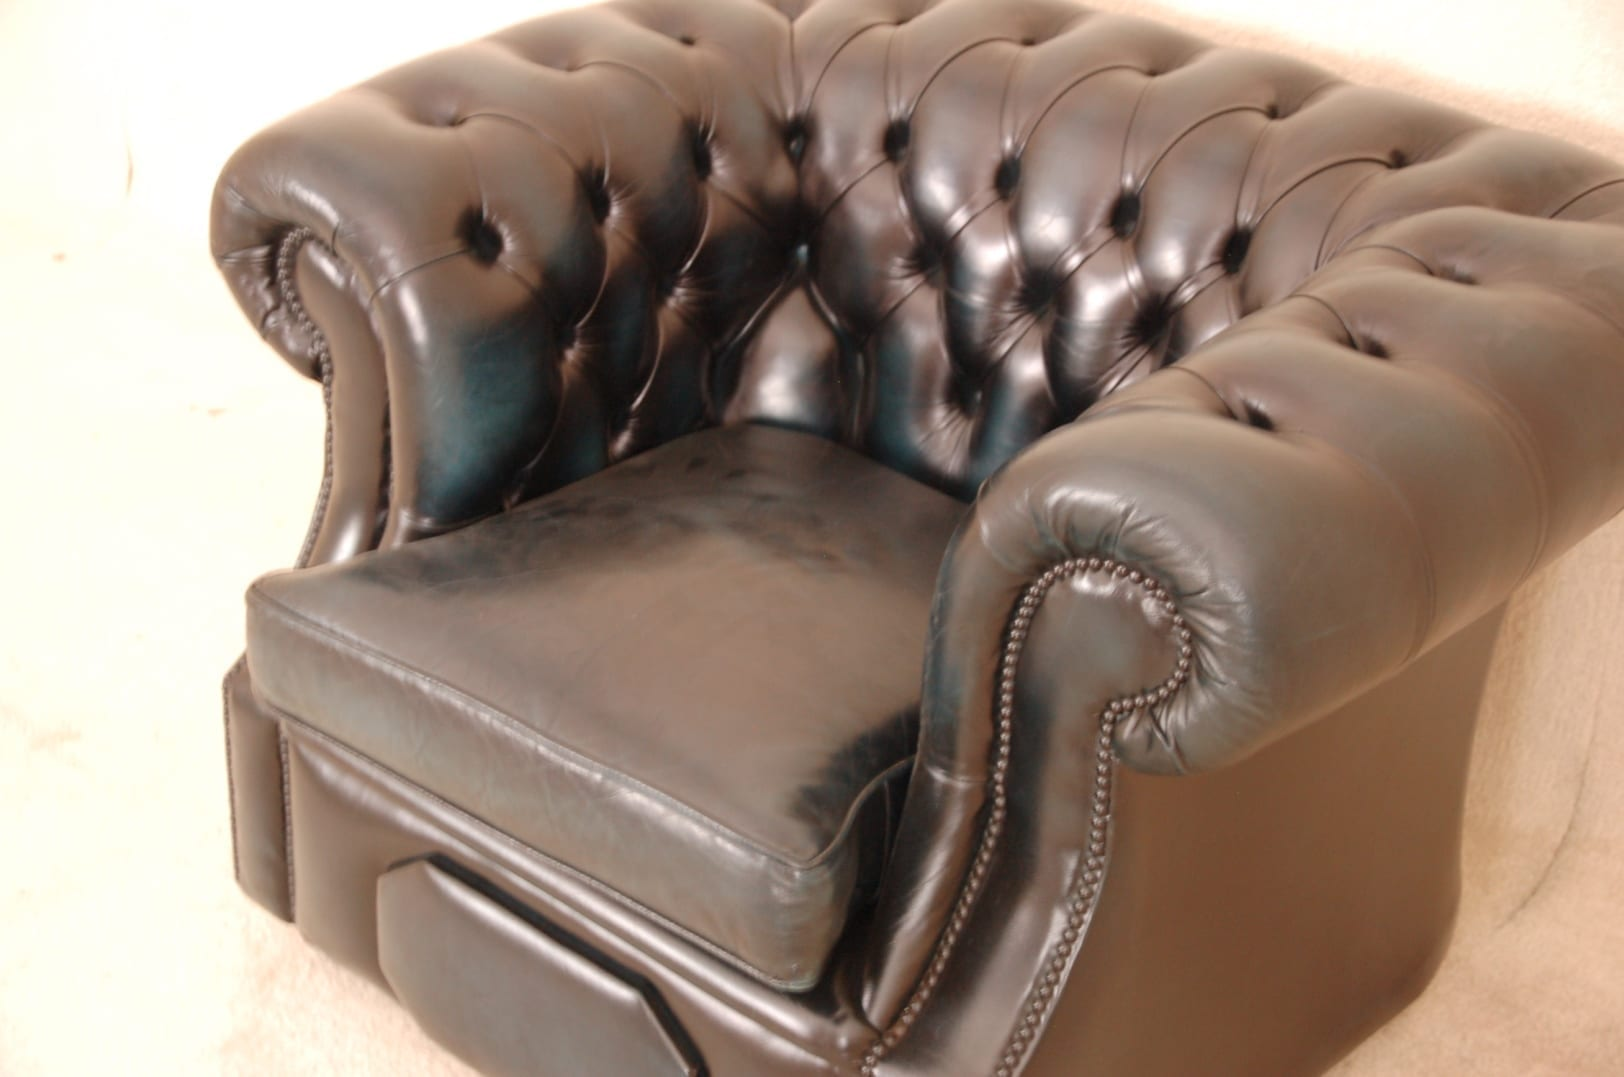 173323_9774-blauwe chesterfield fauteuil